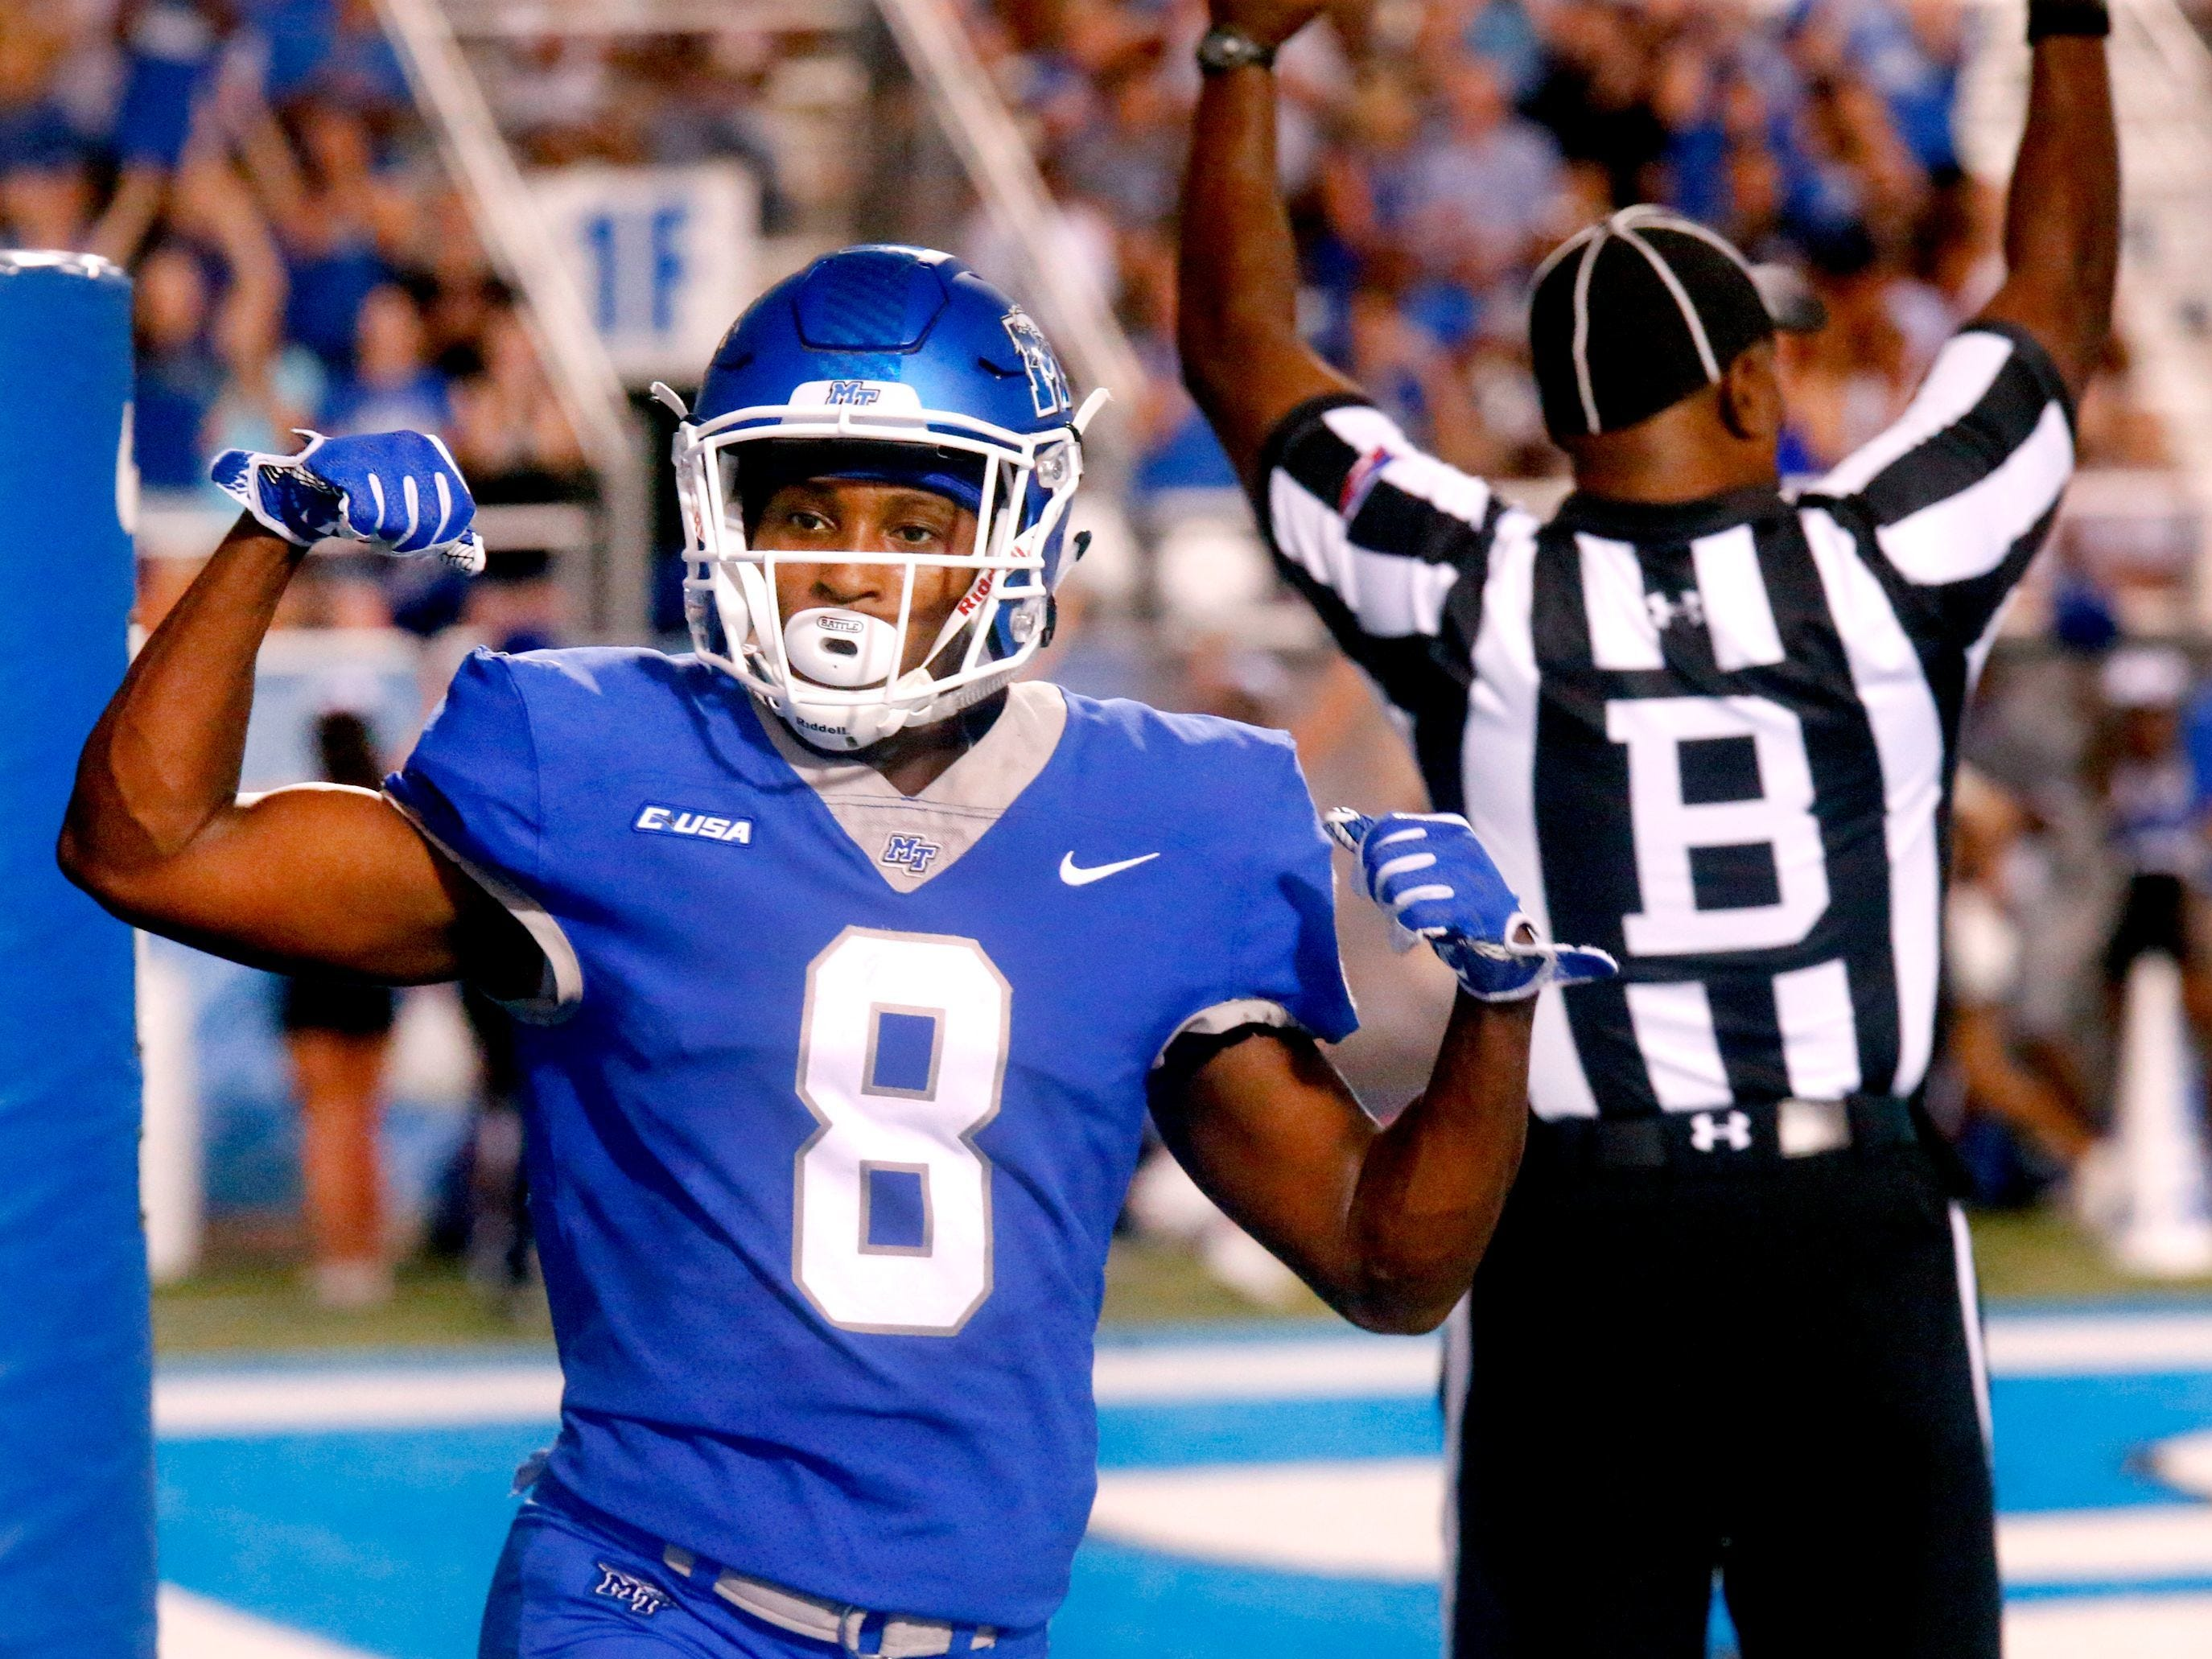 After a breakout sophomore year, wide receiver Ty Lee will figure to be a key part of MTSU's offensive plans in 2018.